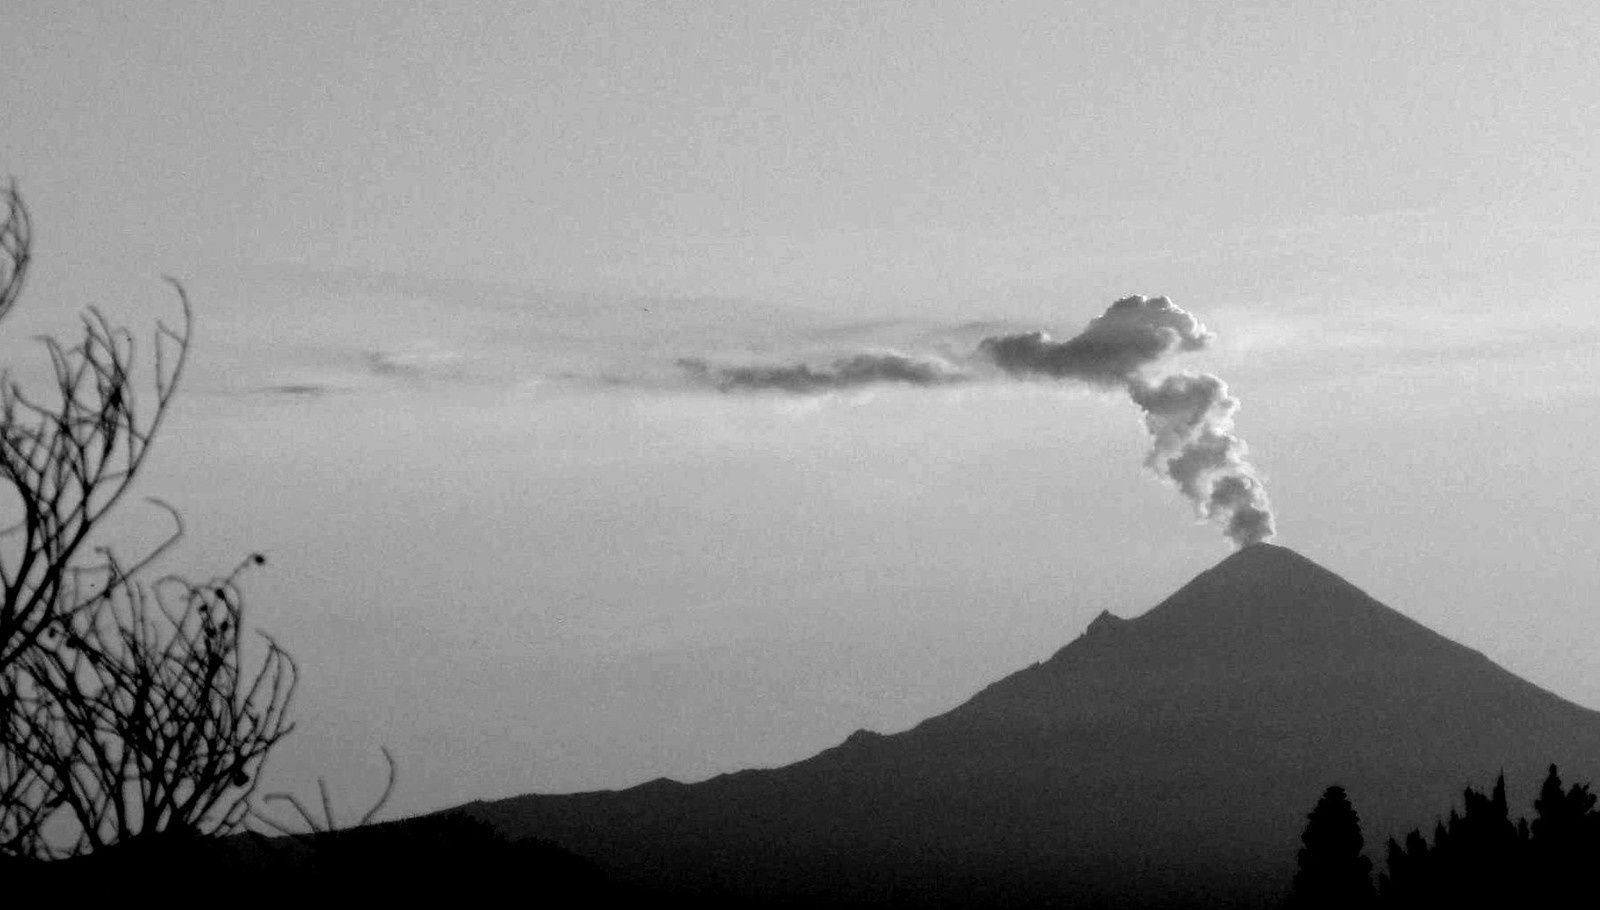 Avec Jean-Claude : l'ascension du Popocatepetl